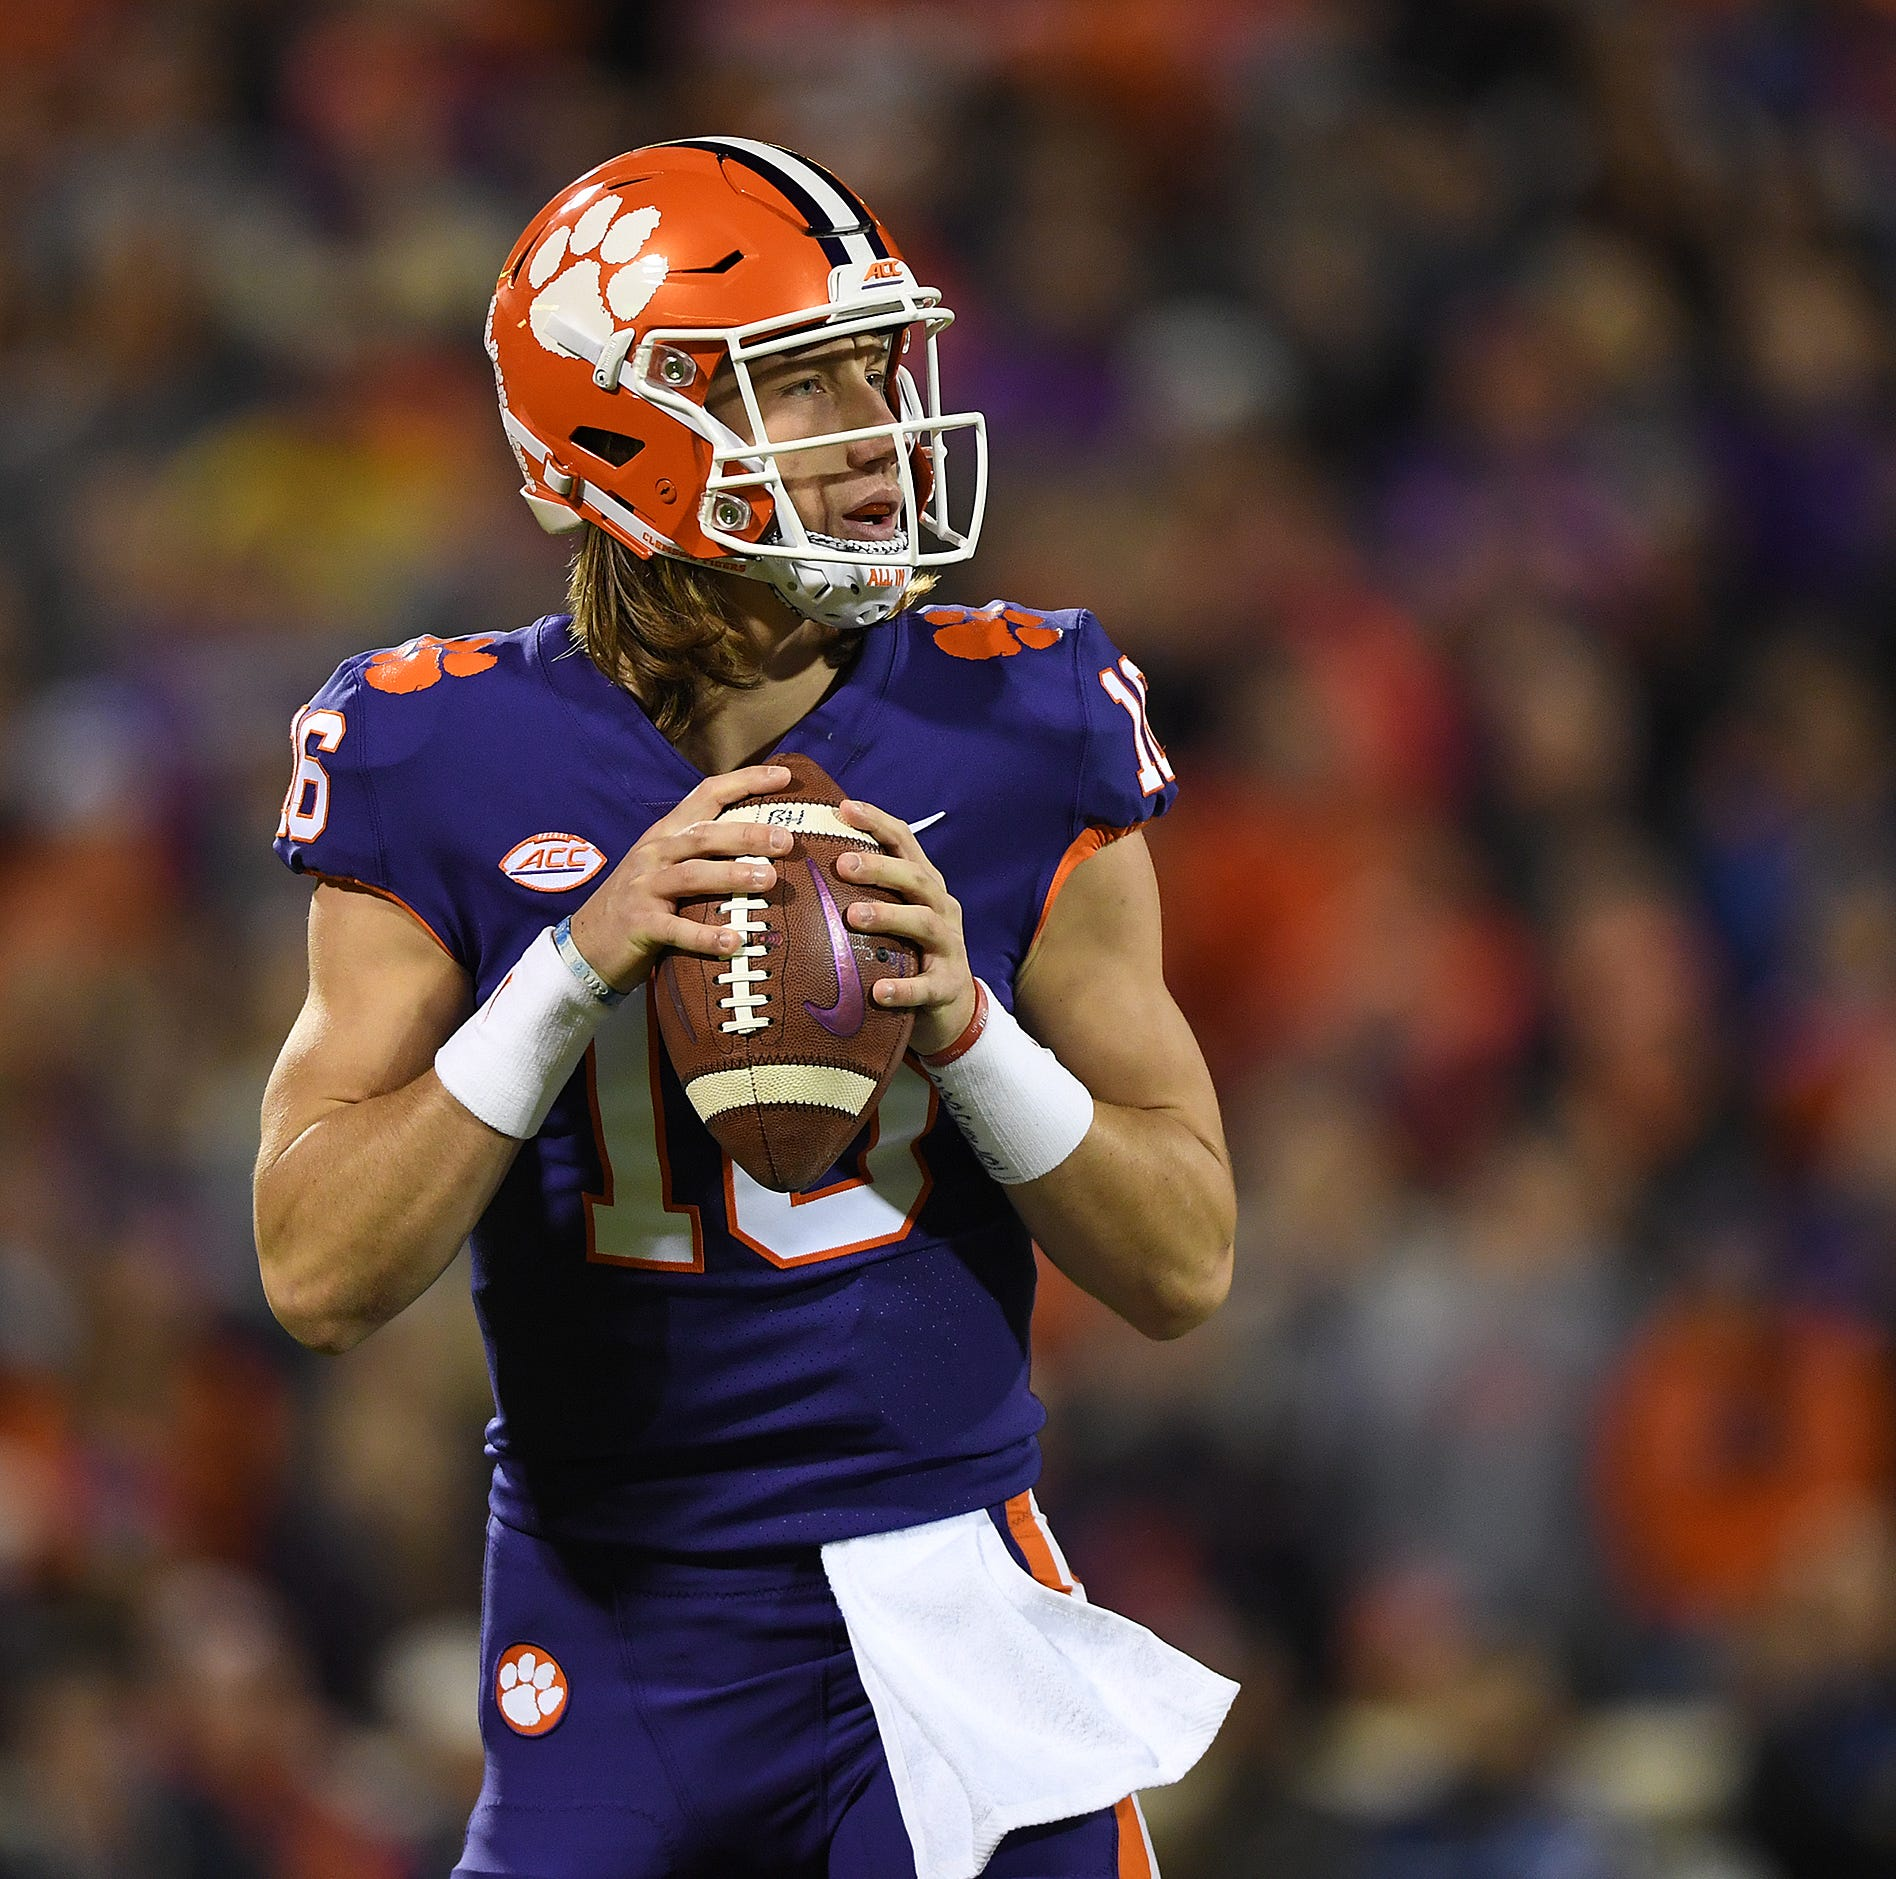 Clemson QB Trevor Lawrence says Gamecocks are 'just another team in the way'